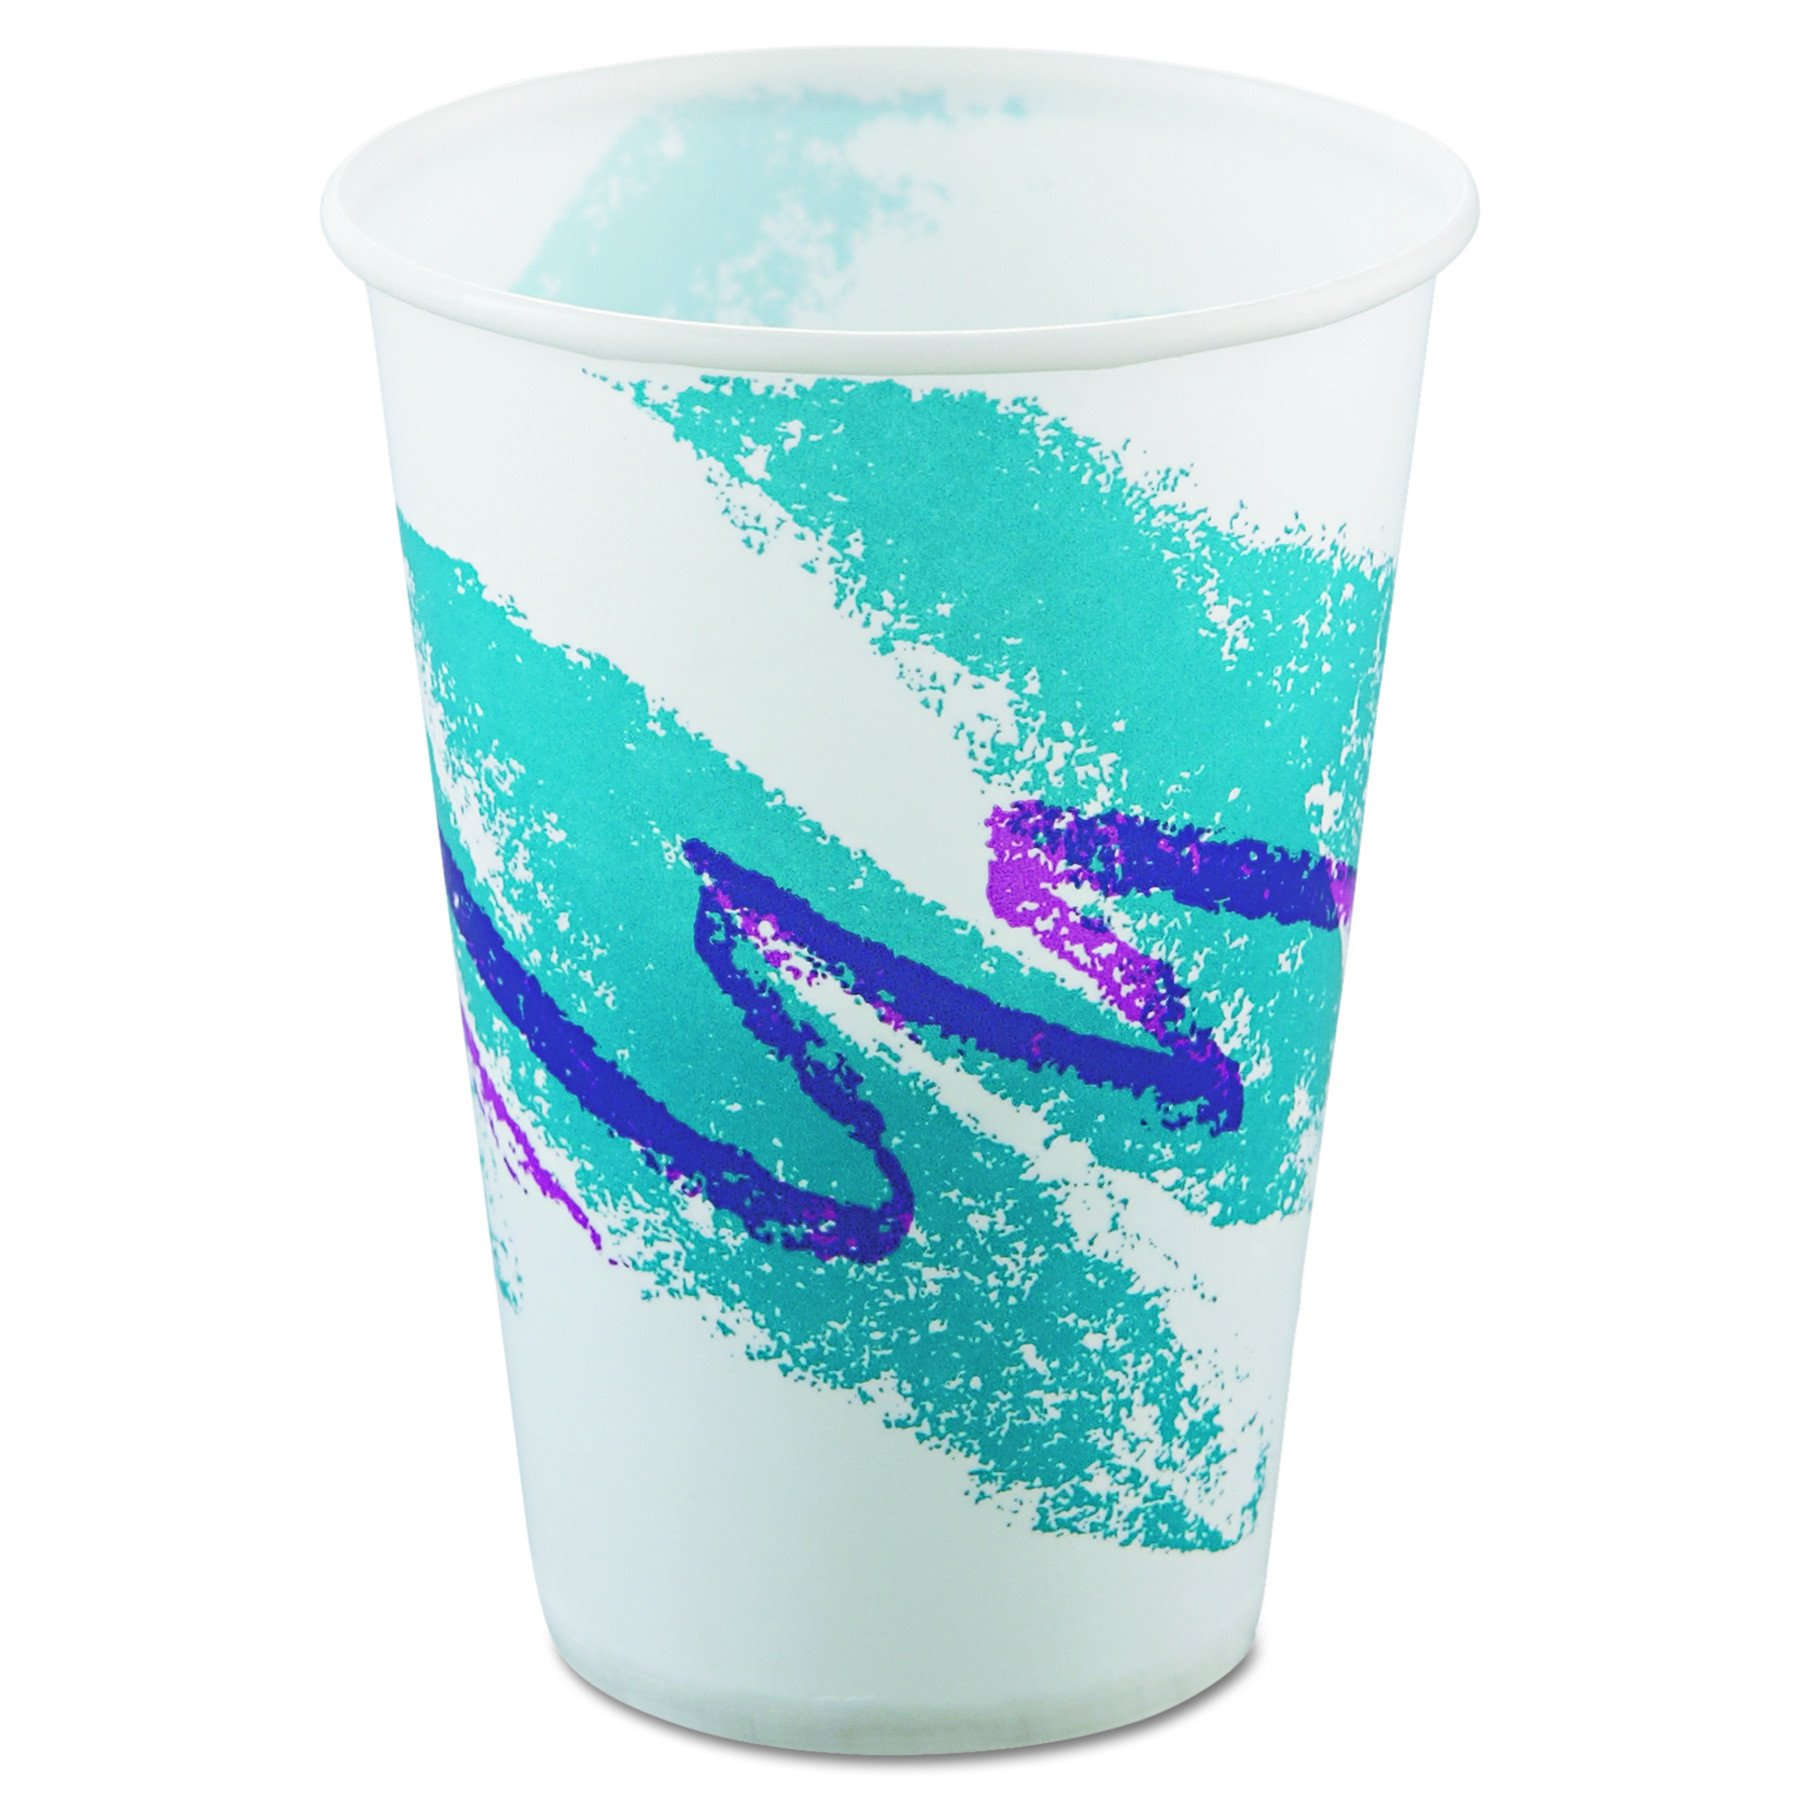 SOLO R10NN-00055 Jazz Design Treated Wax Coated Paper Cold Cup, 10 oz. (20 Packs of 100)